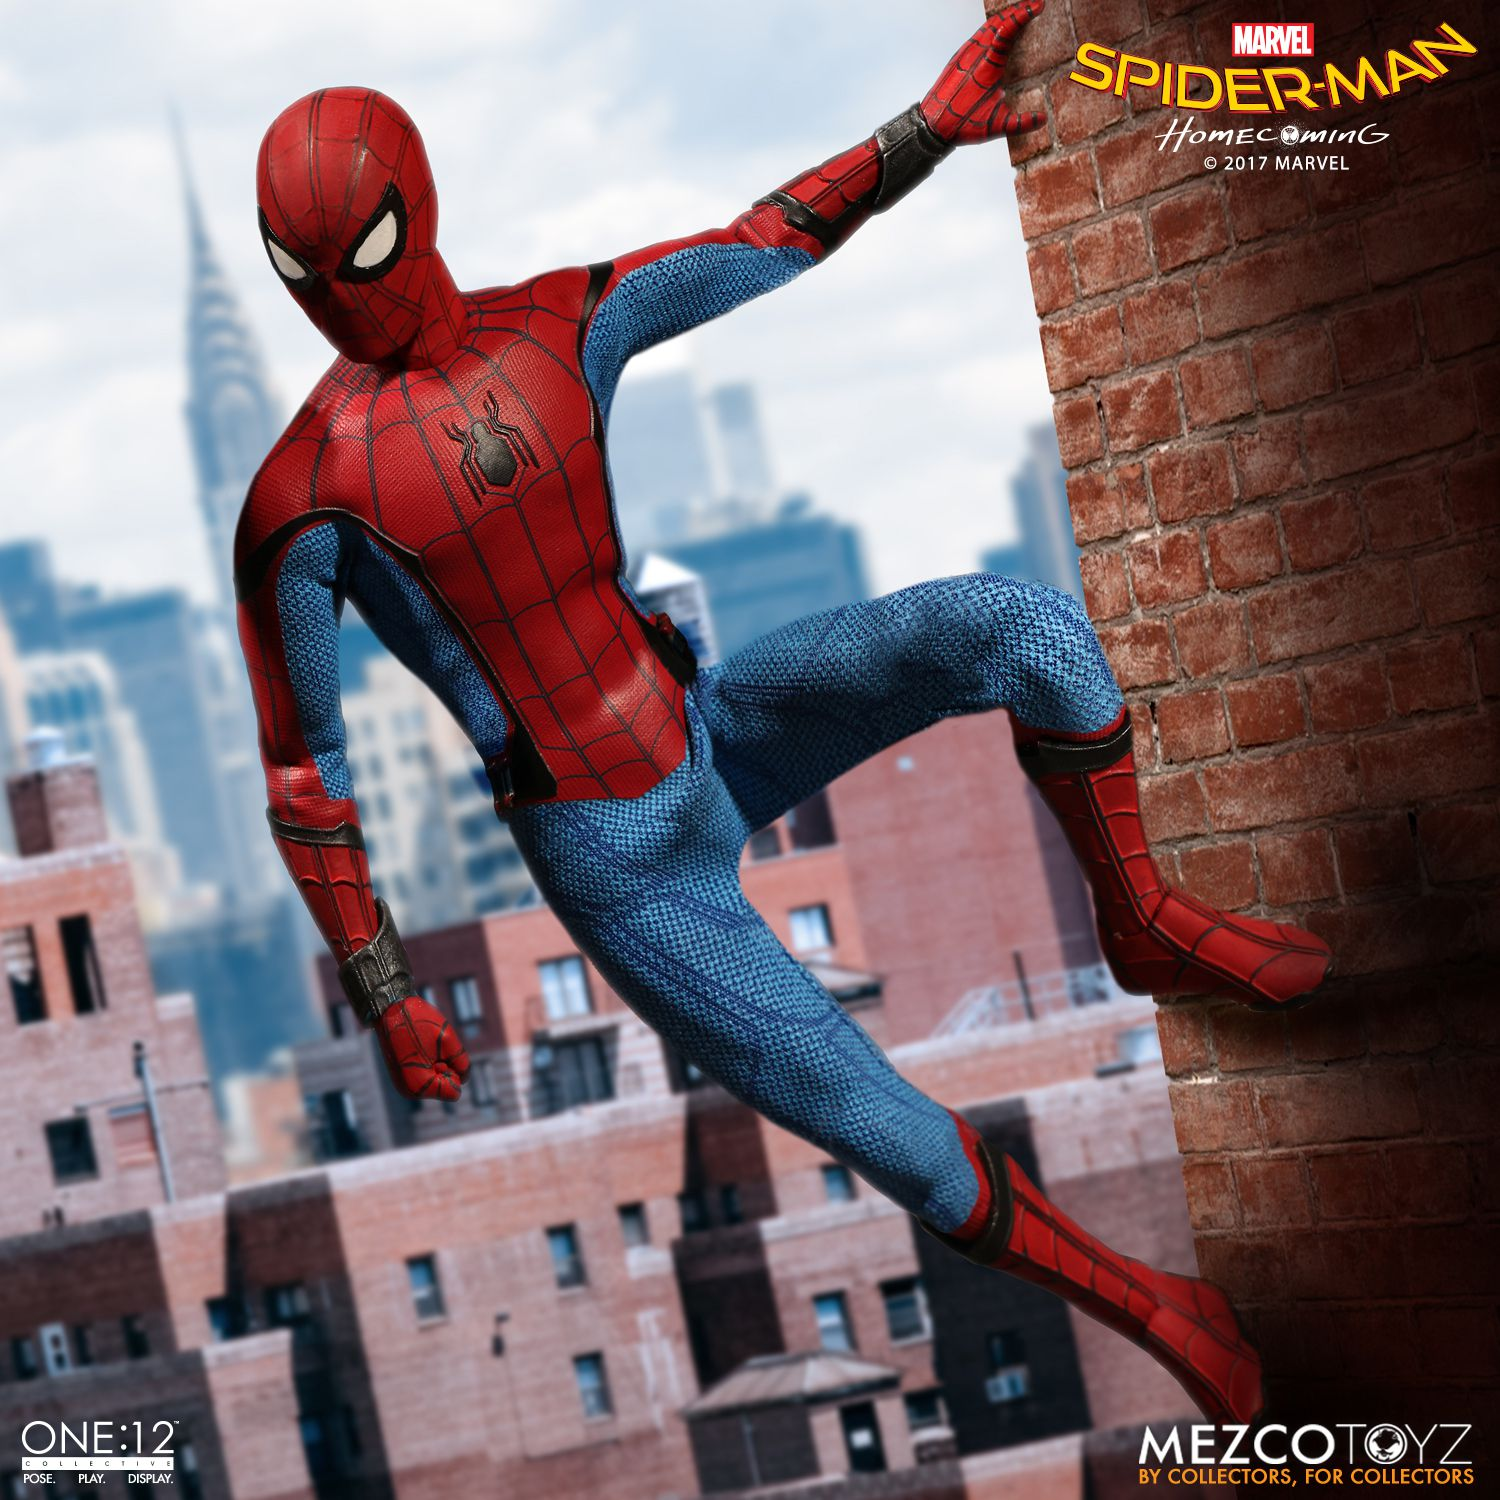 Spider-Man Homecoming One12 Action Figure & Spider-Man: Homecoming One:12 Collective Action Figure